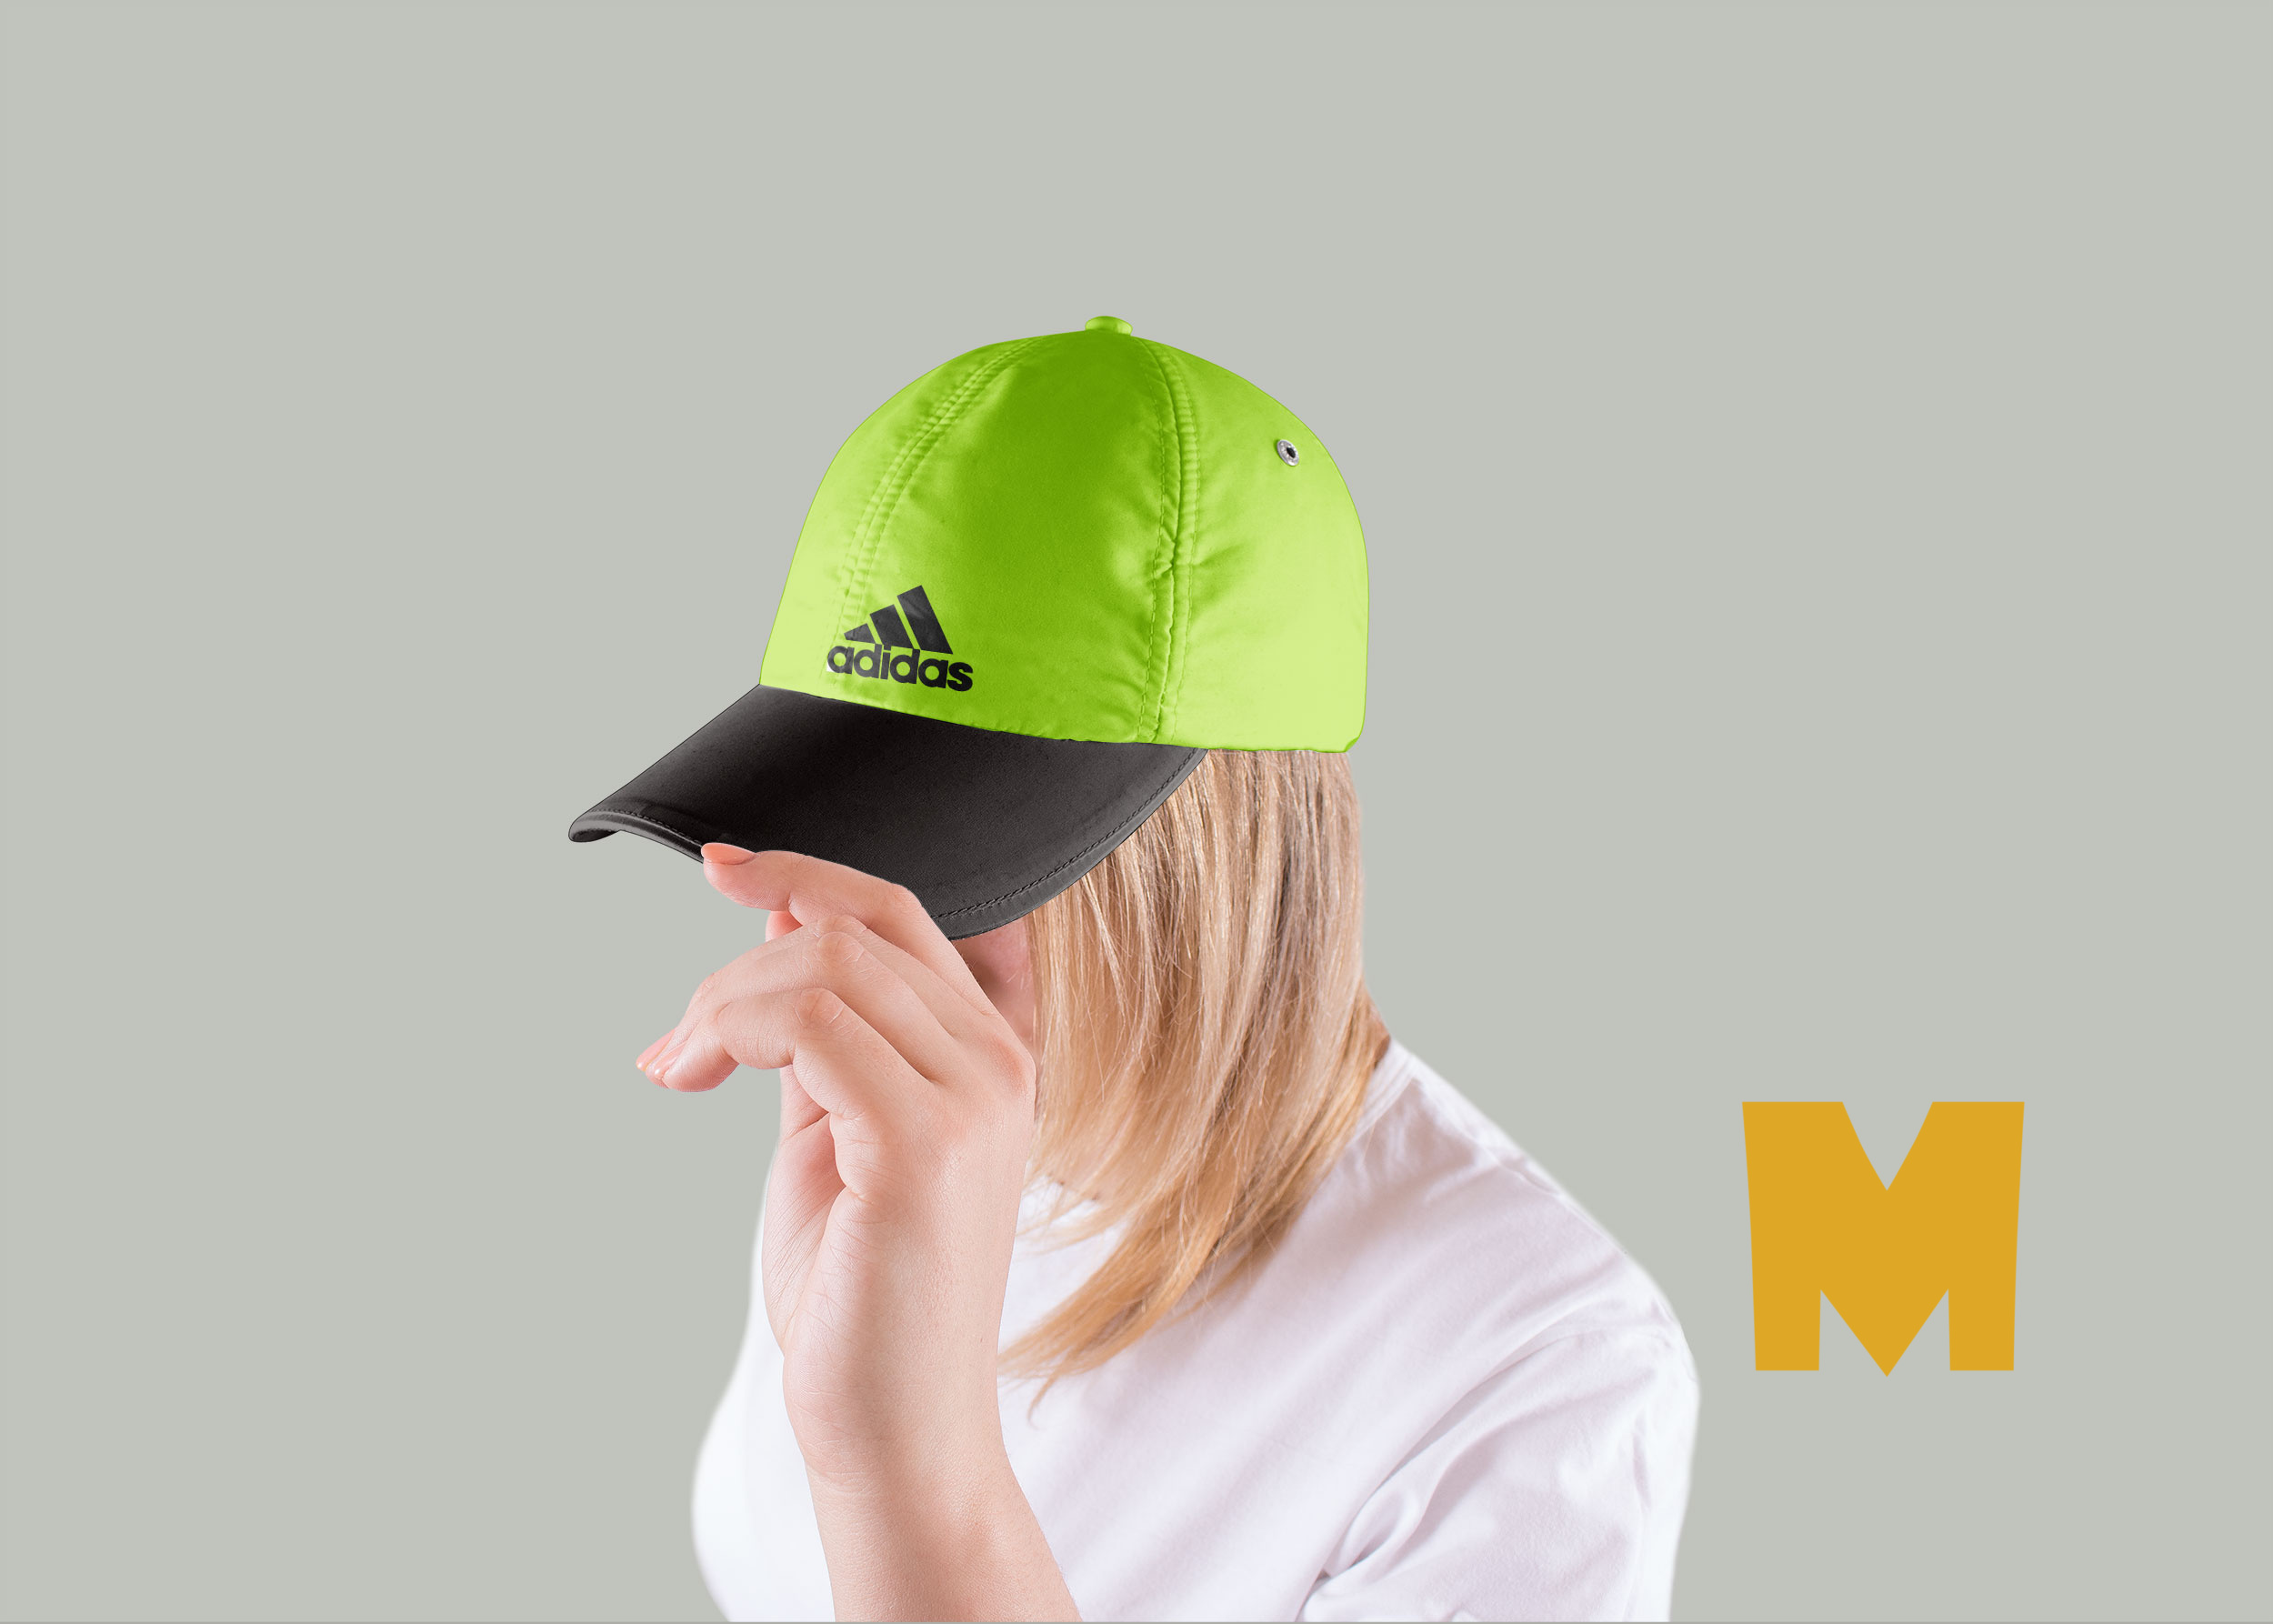 Base Ball Girl Cap Design Mockup